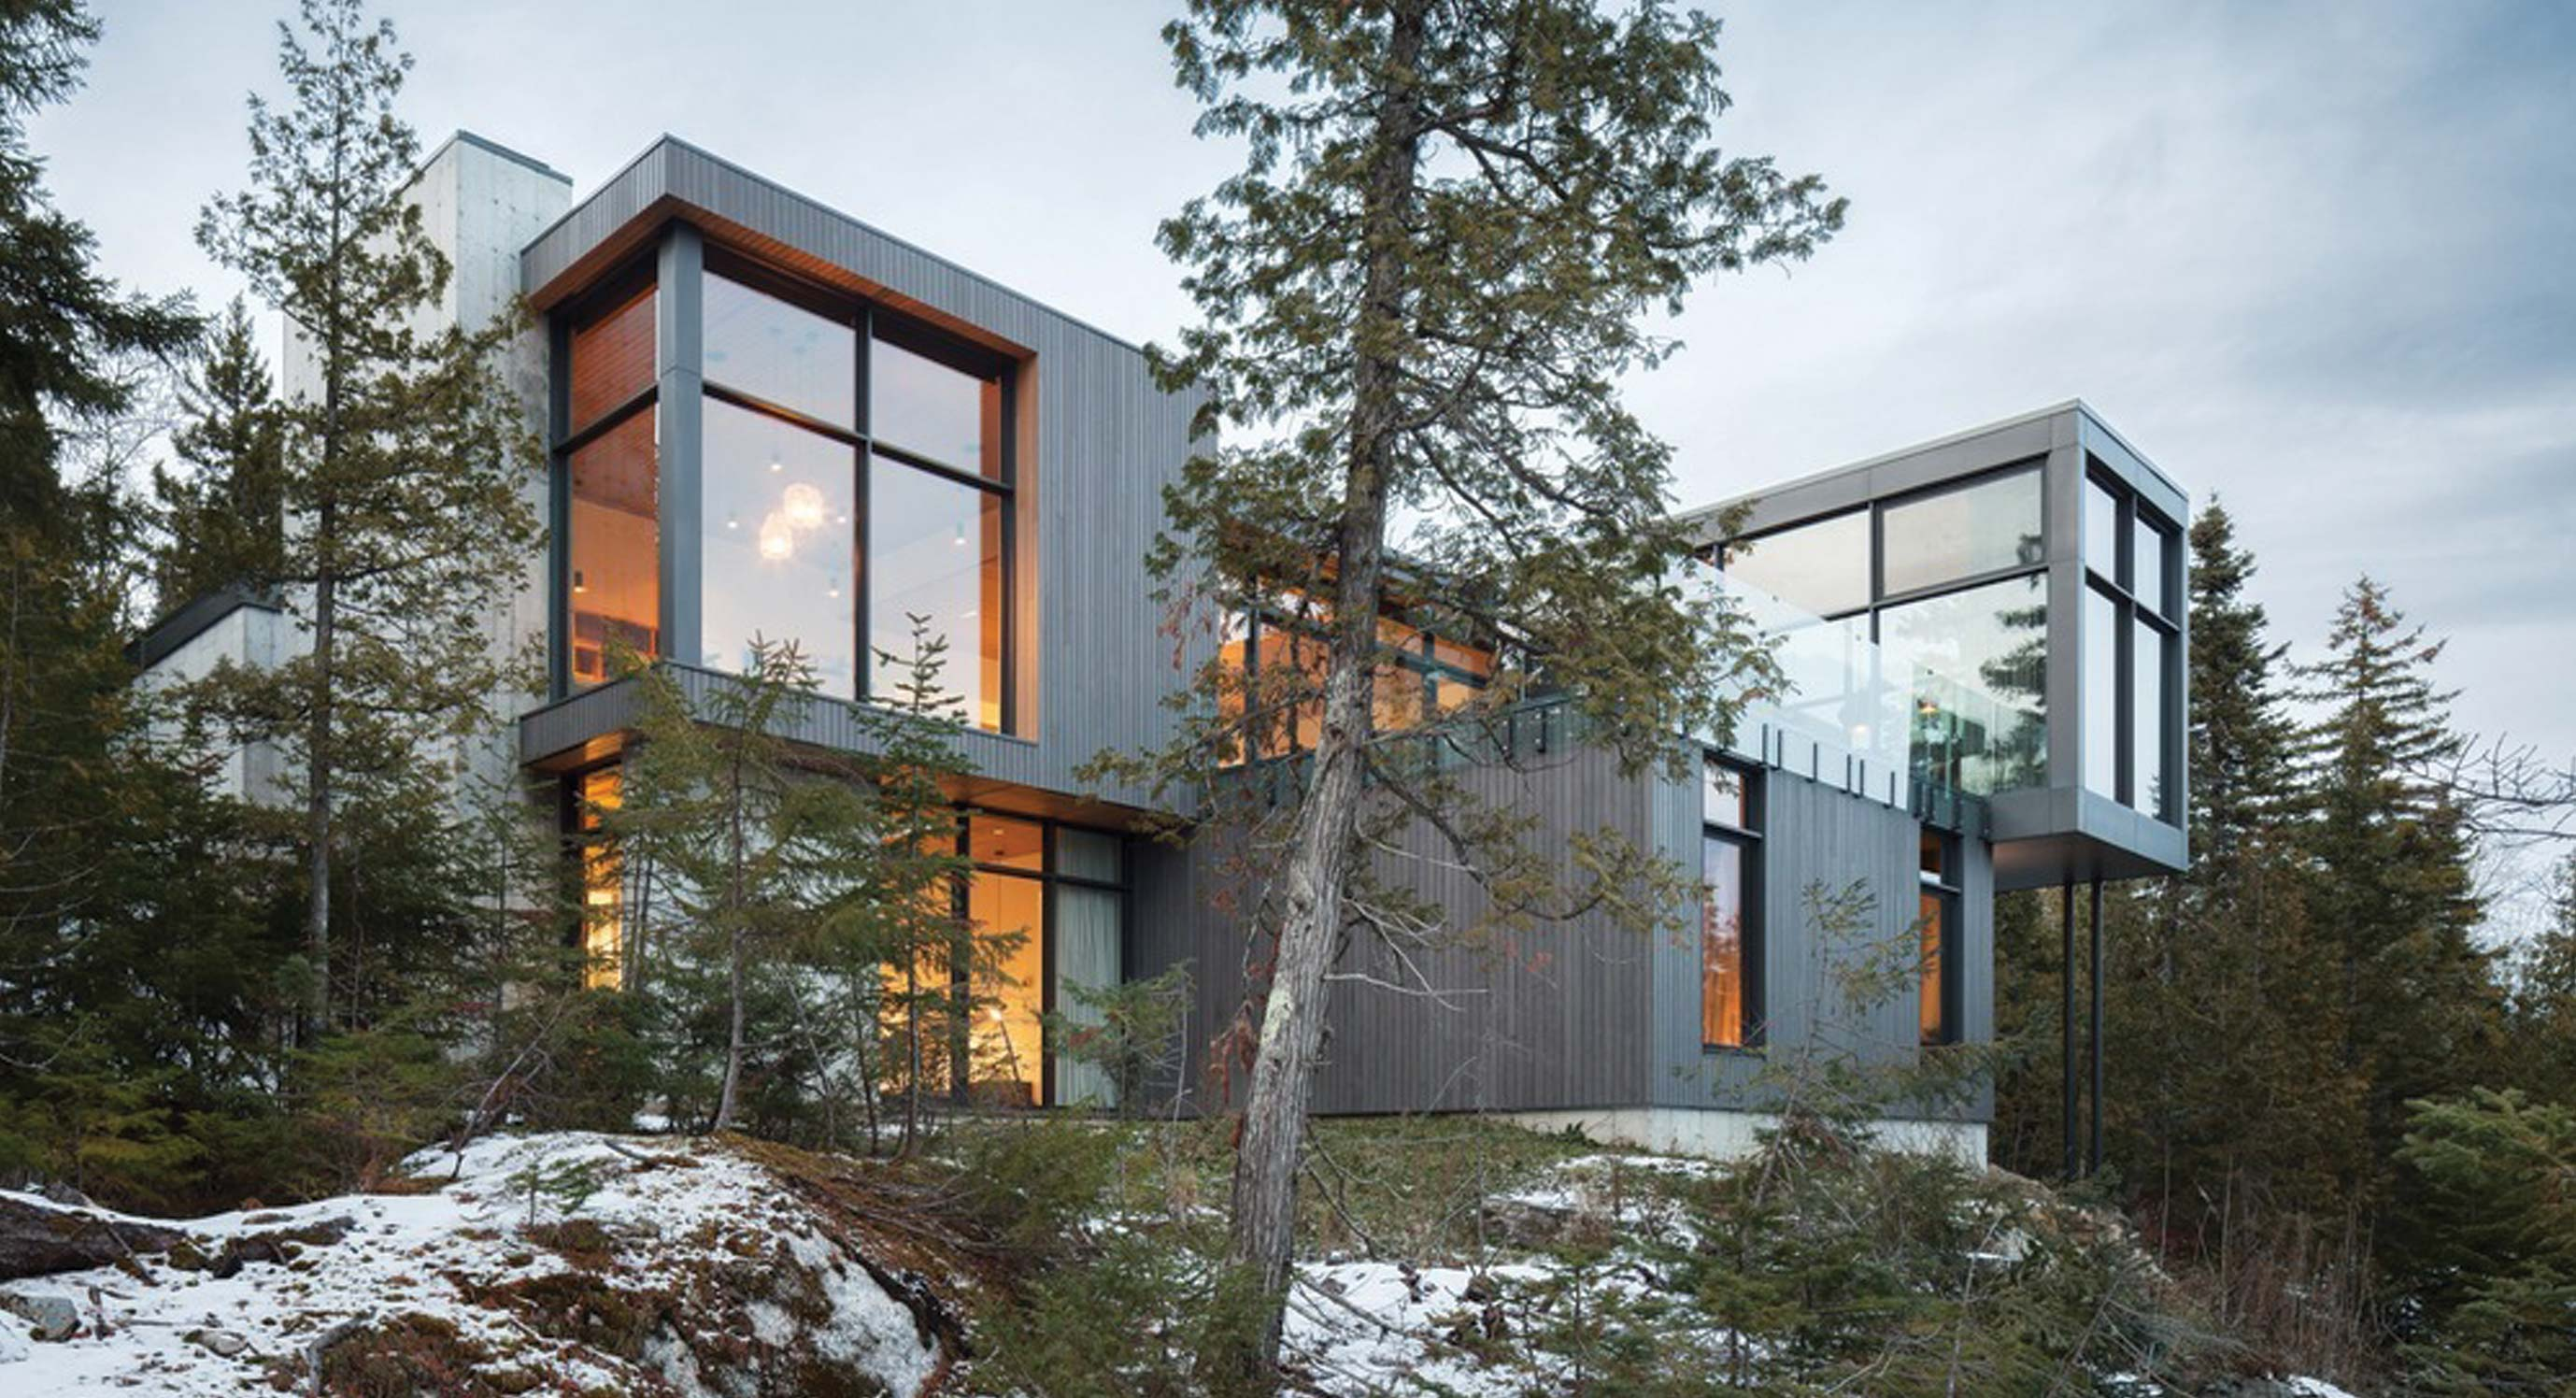 Thellend Fortin Architectes' Long Horizontals House Is a Mountain Haven